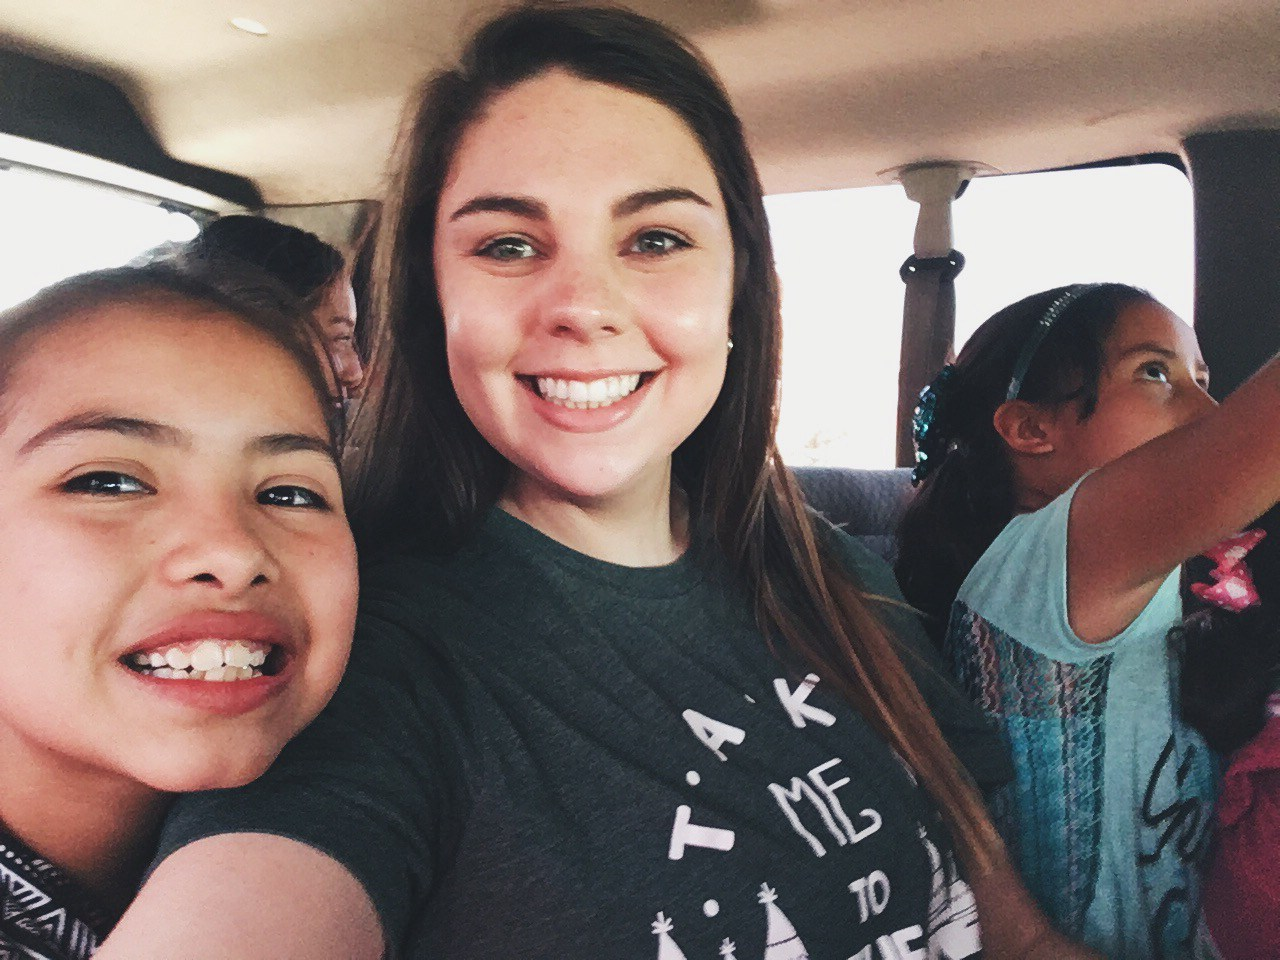 Emilee's selfie with children from Casa Hogar Getsemani